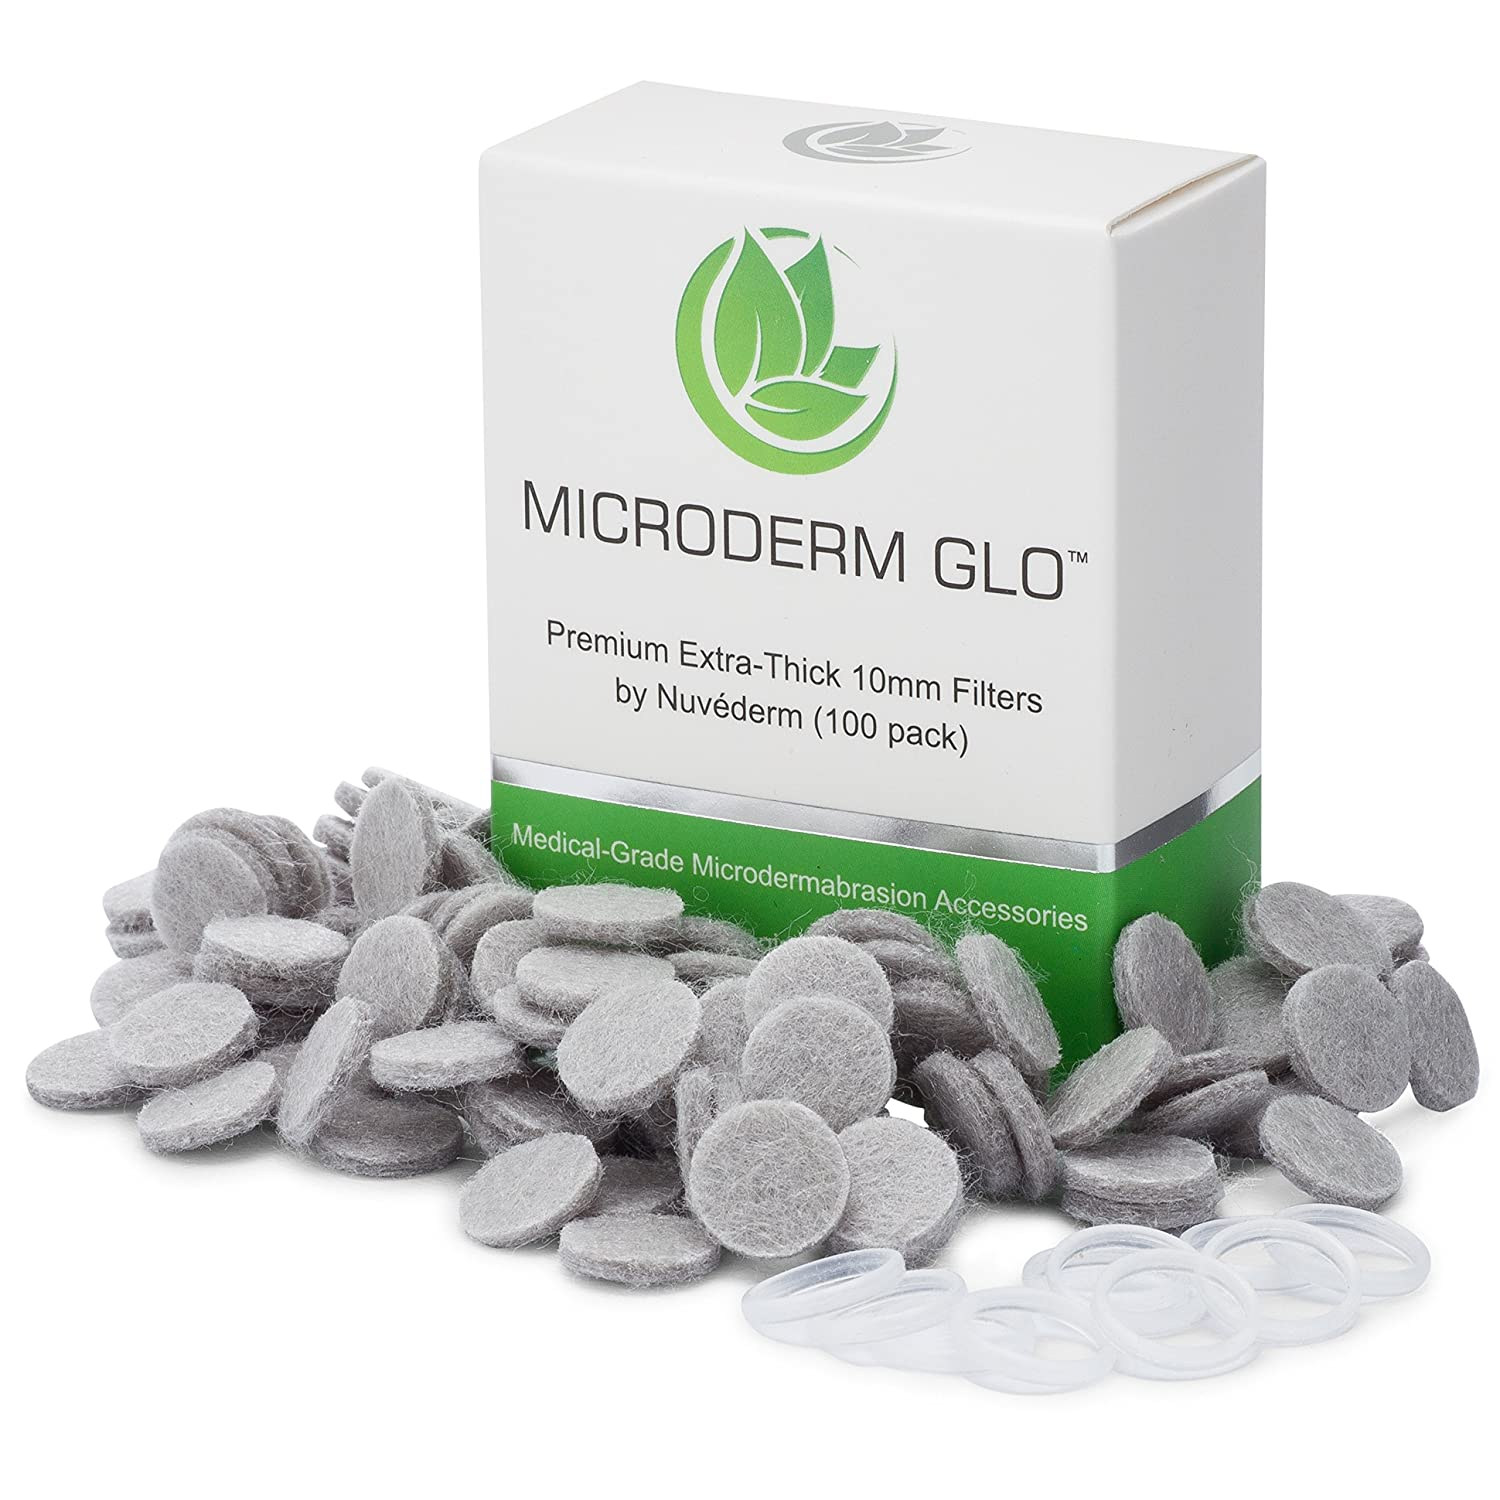 Microderm GLO Premium Extra-Thick 10mm Filters by Nuv derm 100 pack – Medical Grade Microdermabrasion Accessories with Patented Safe3D Technology, FDA Approved, Safe for All Skin Types.